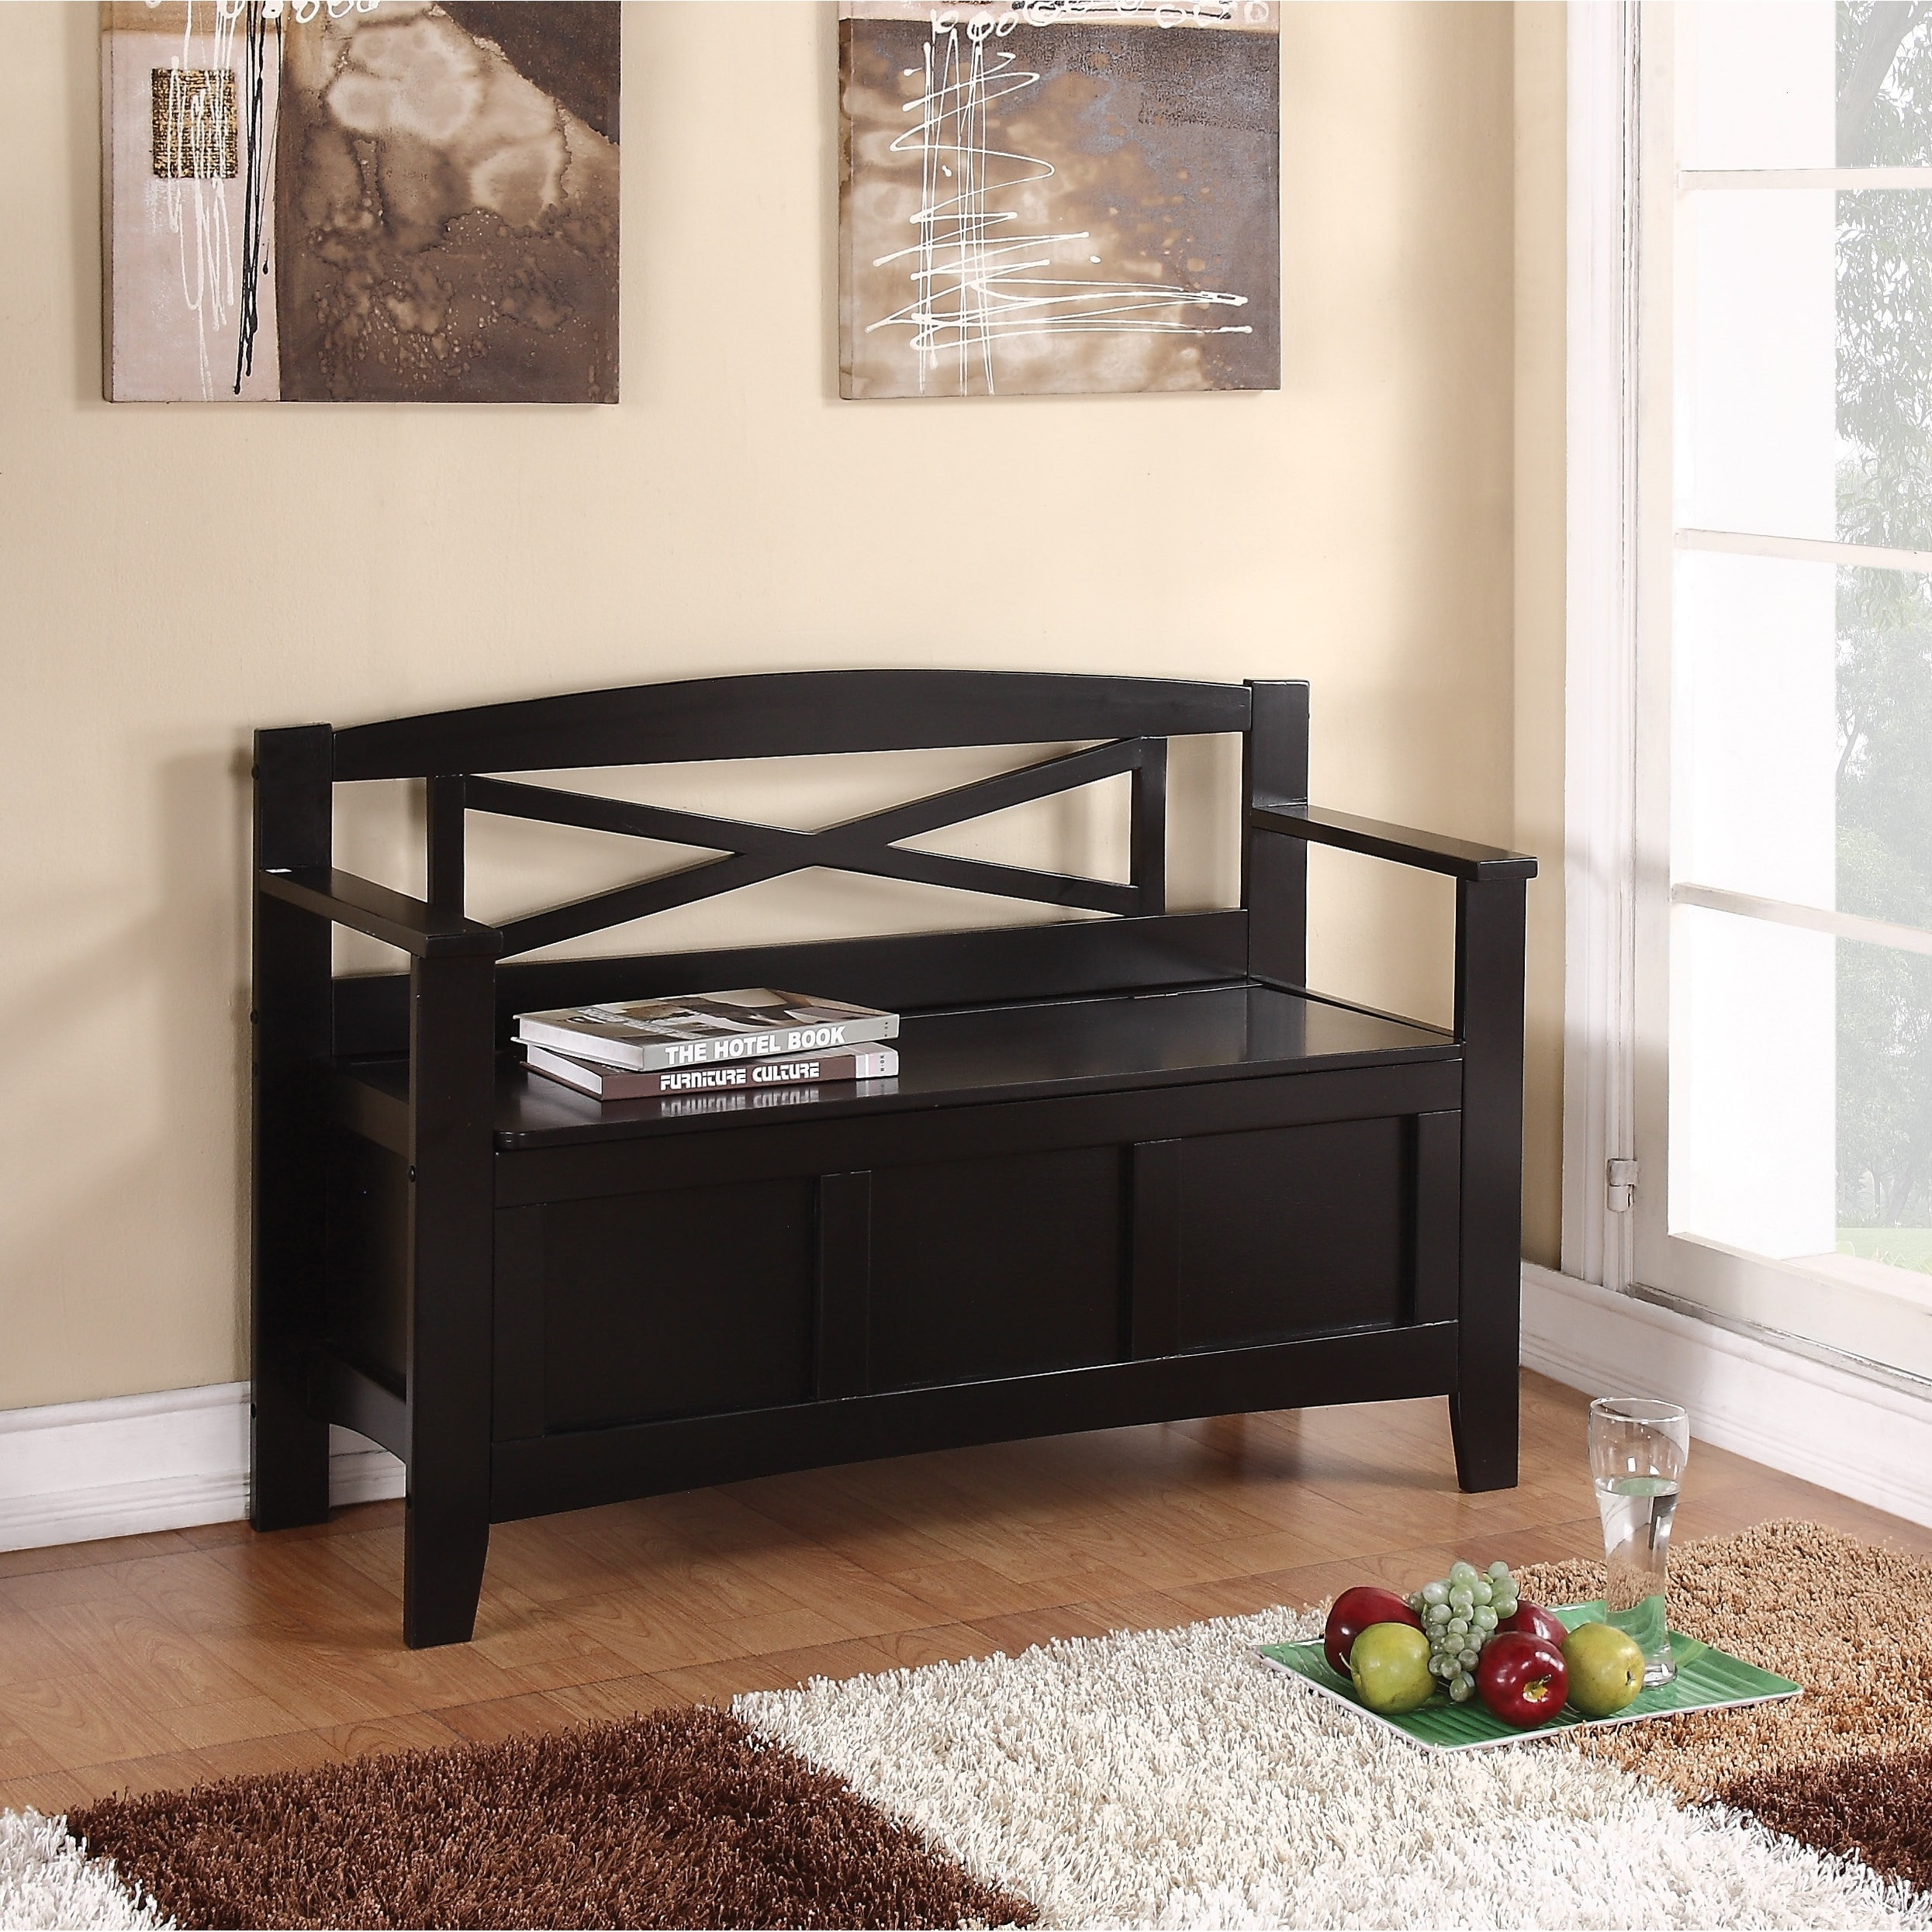 Amazing Details About Storage Bench Flip Up Organizer Entryway Home Decor Furniture Black Gift New Short Links Chair Design For Home Short Linksinfo